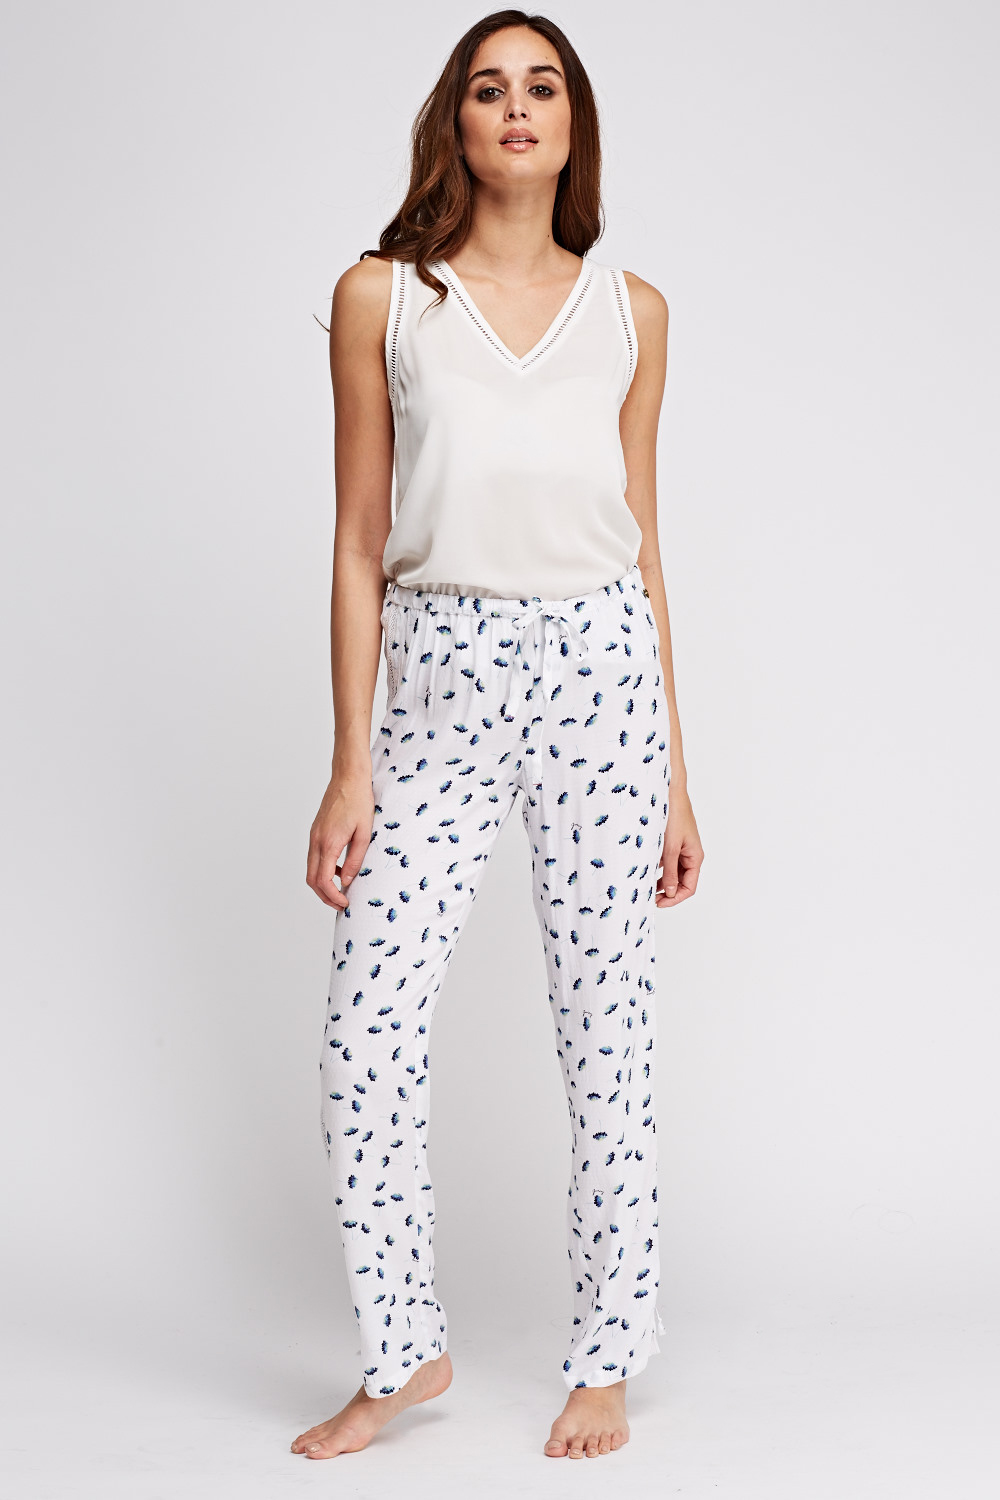 681e1c8b0d Juicy Couture Flower Printed Pyjama Bottoms - Limited edition ...